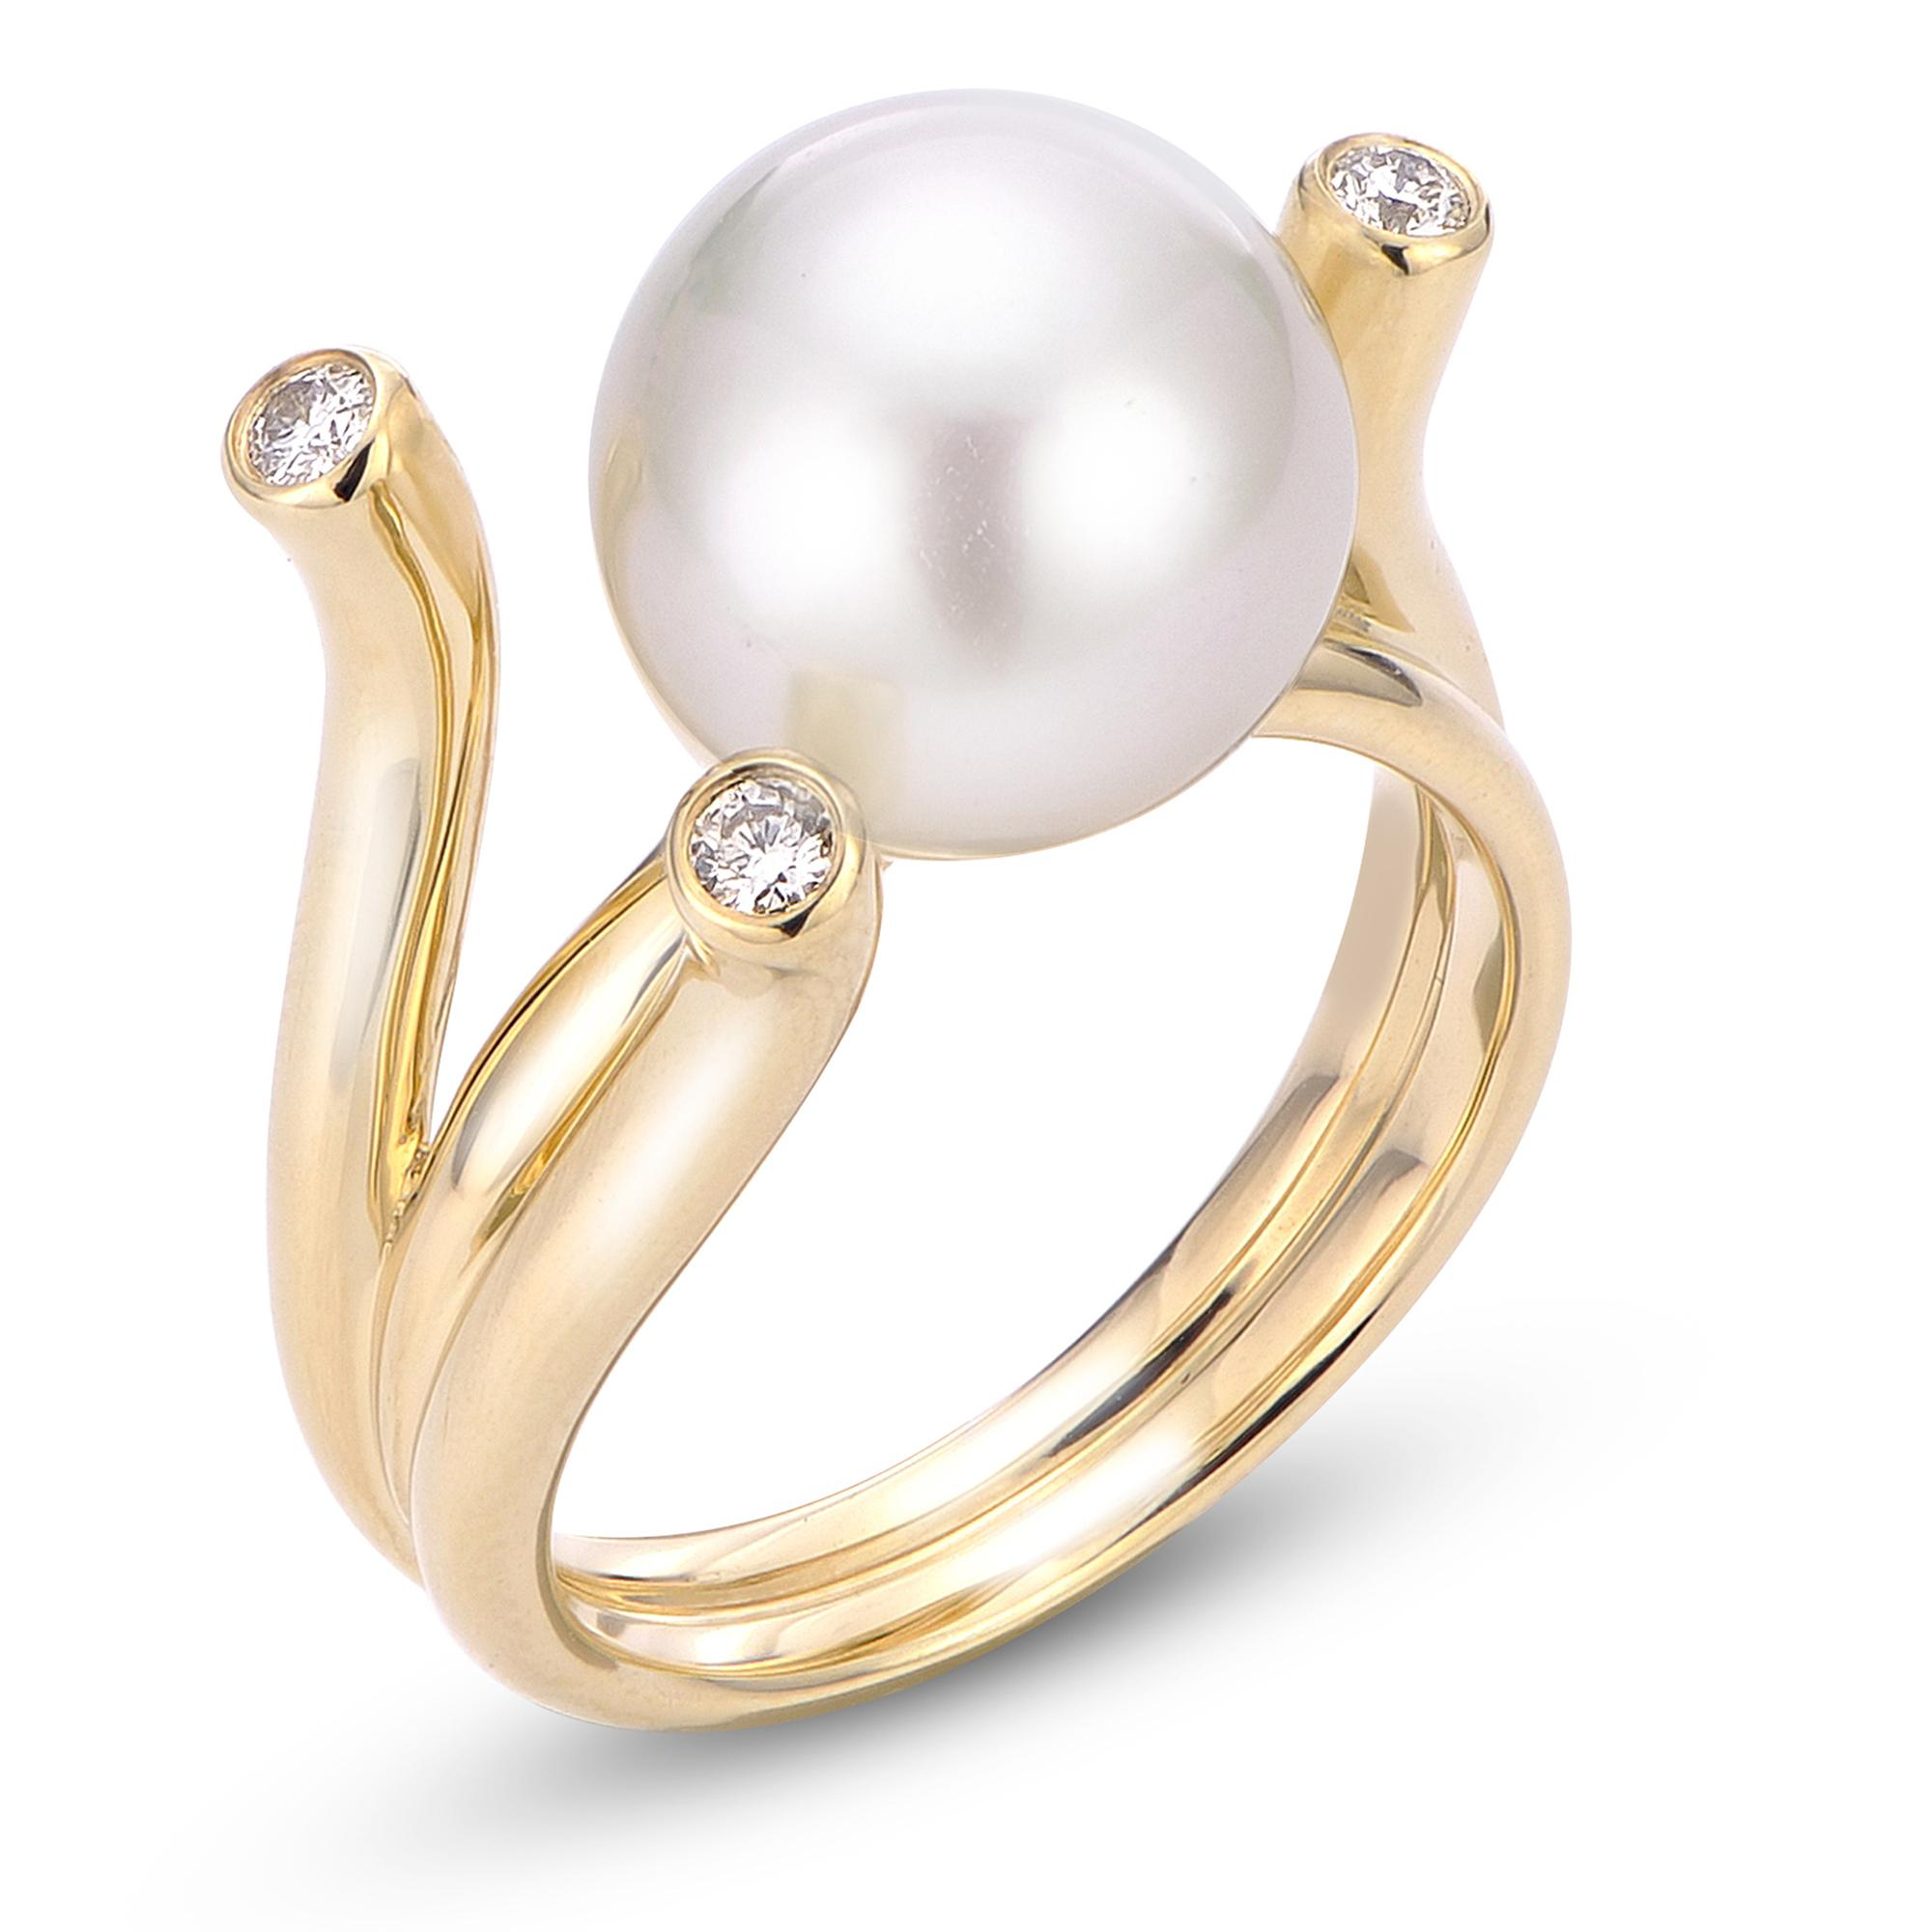 5c1803005 14K Yellow Gold South Sea Pearl Ring 914471/WSS-7 | Rings from ...